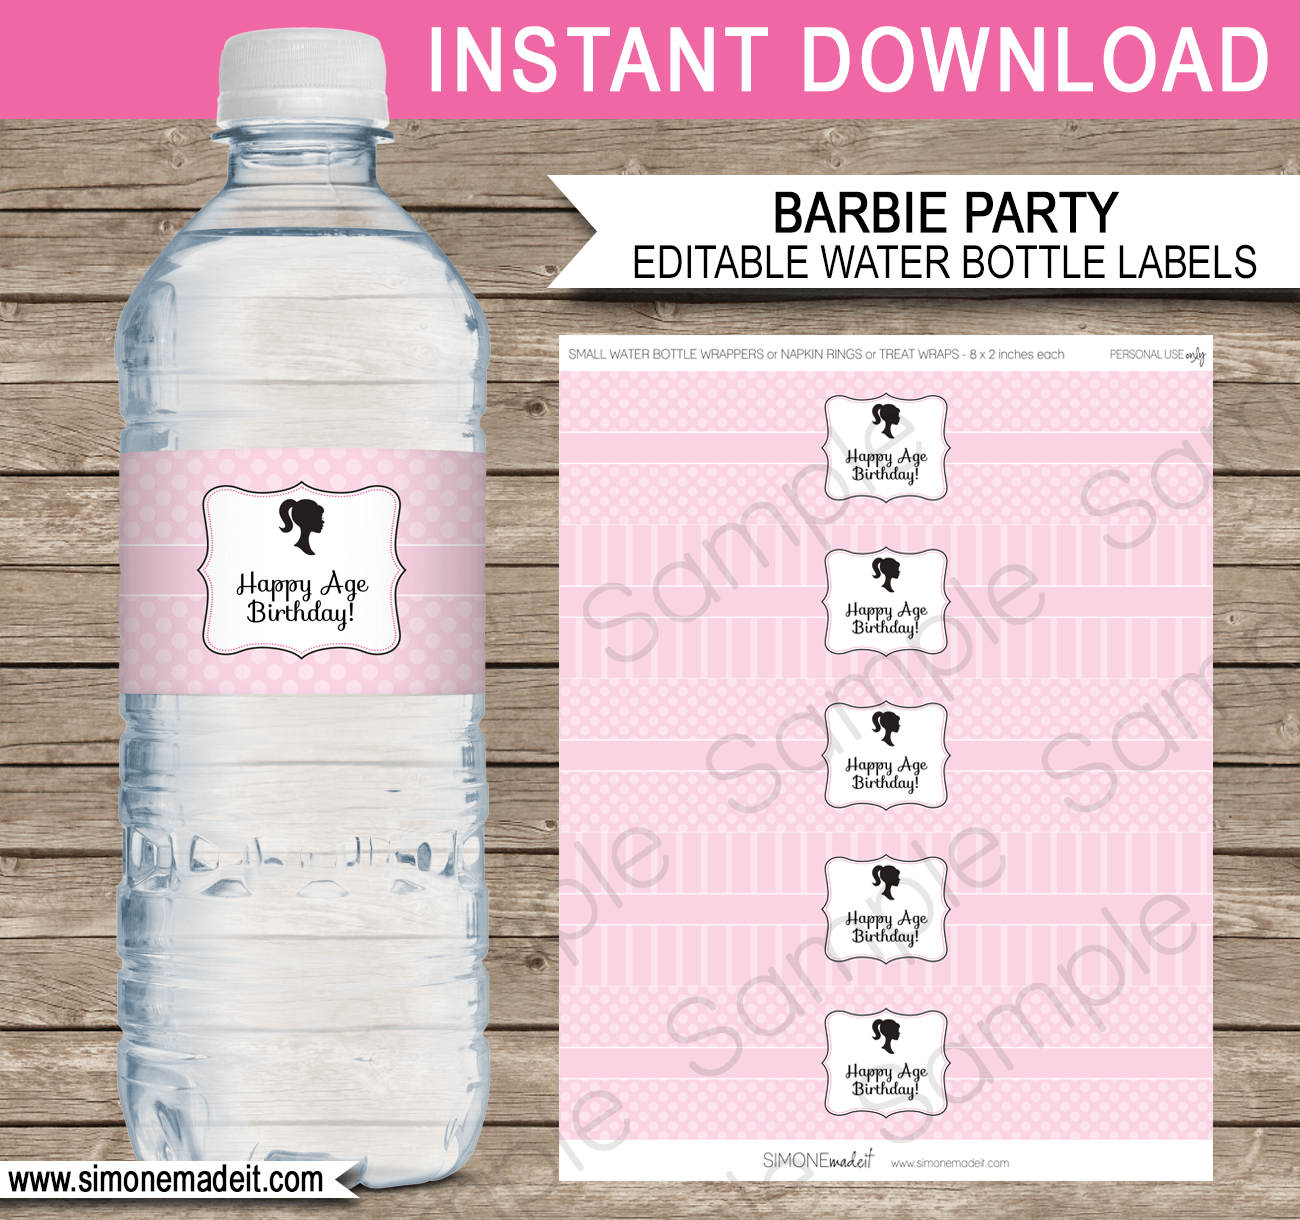 Barbie party water bottle labels editable template for Free water bottle label template